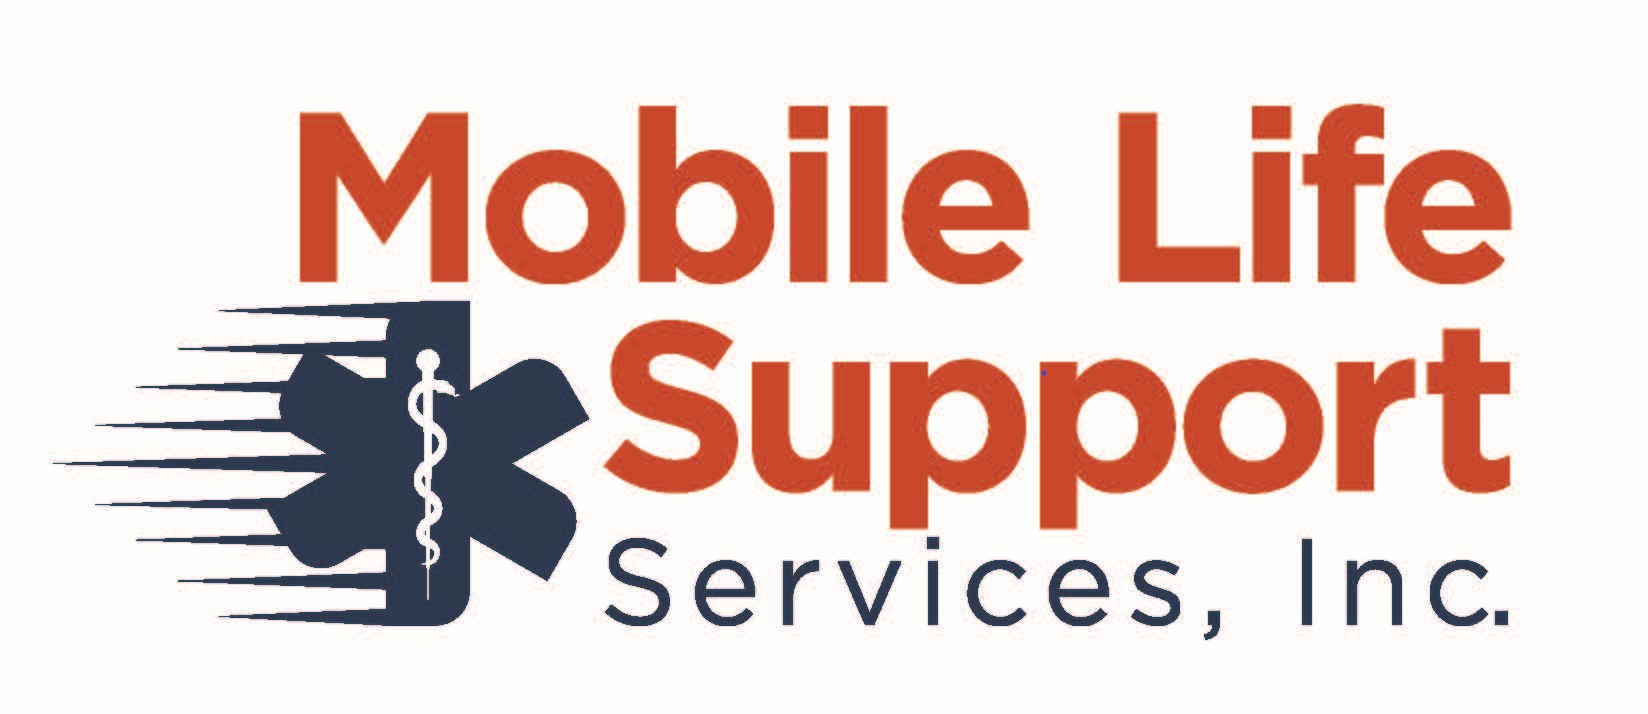 Mobile Life Support Services